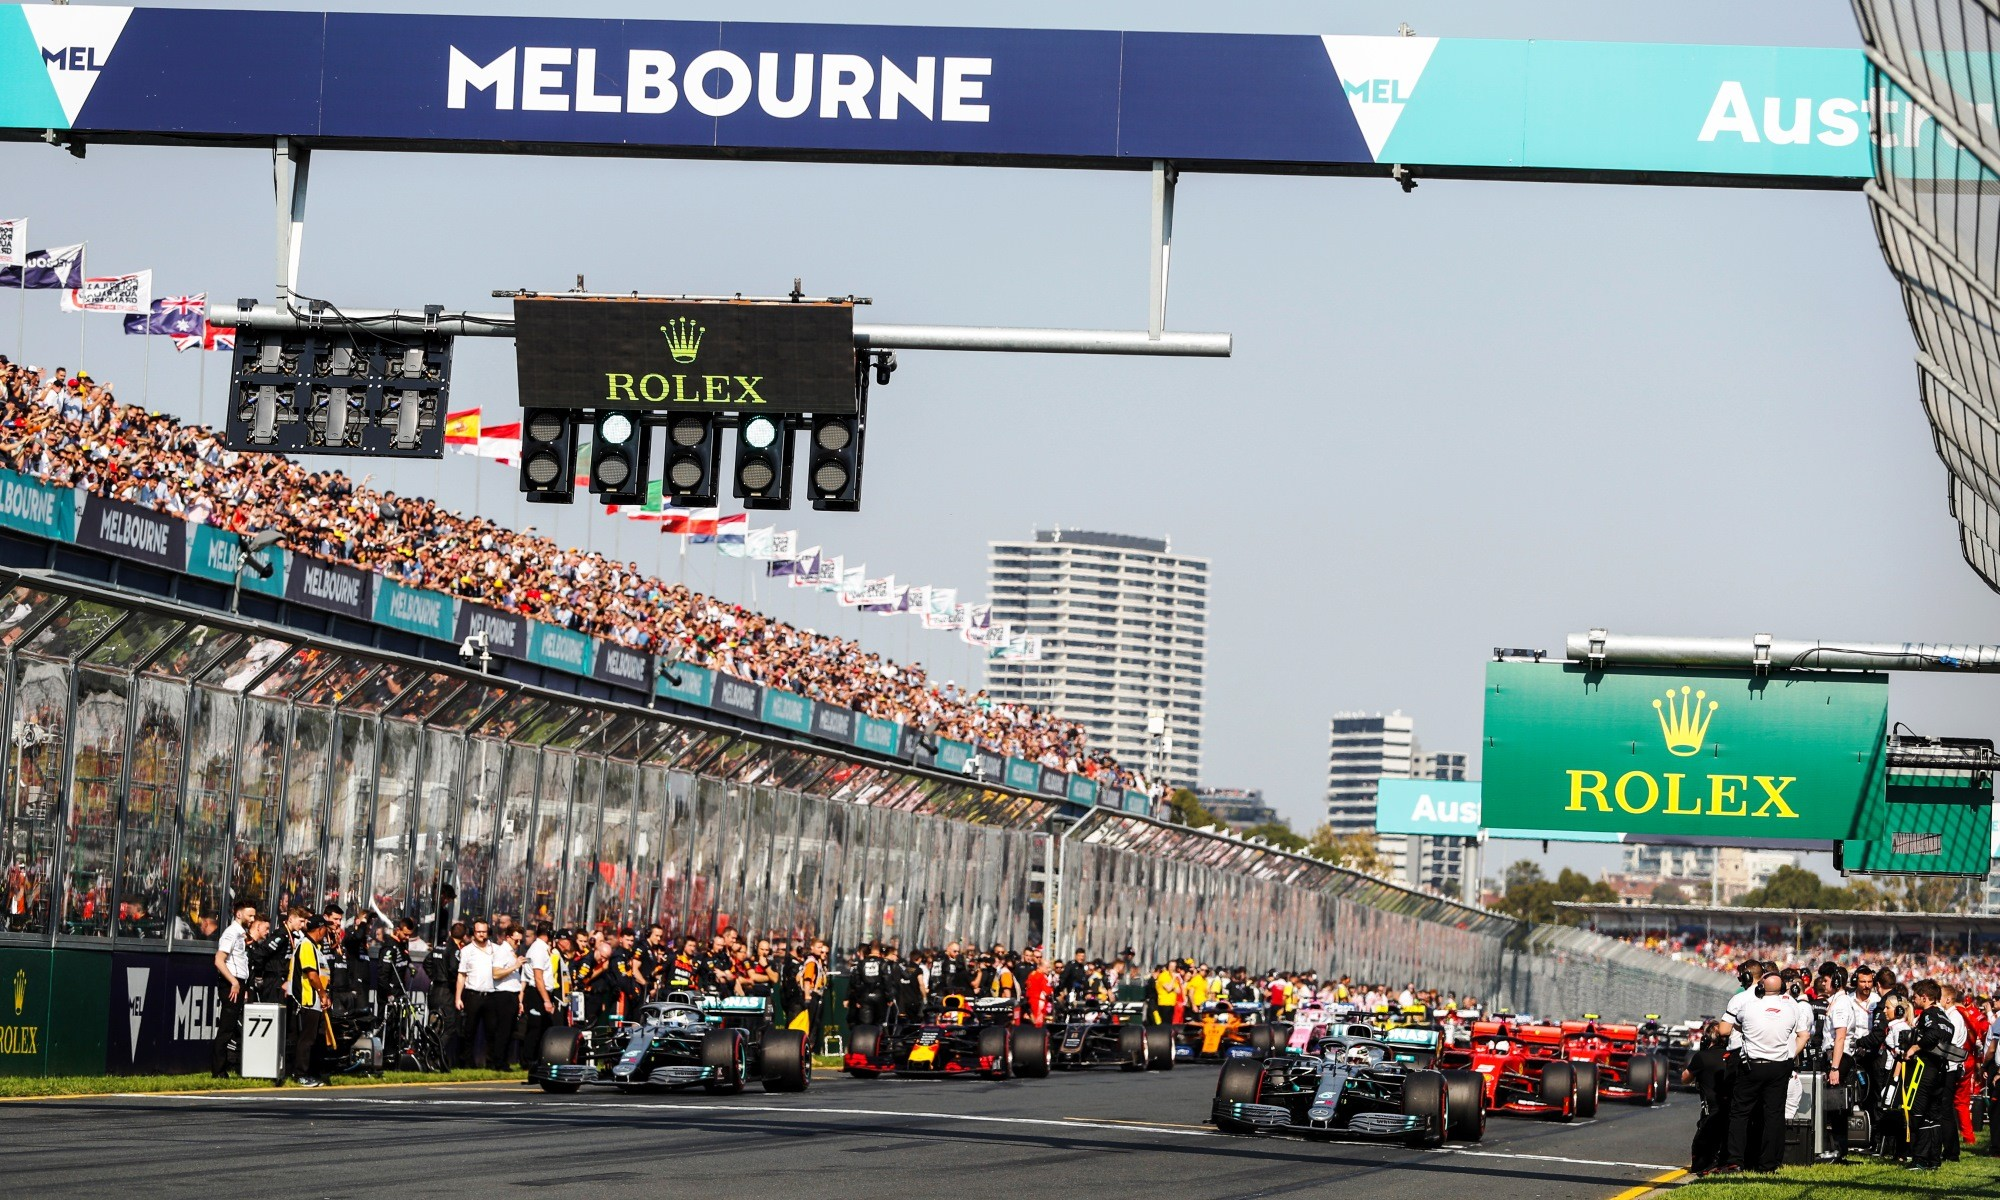 Australian Grand Prix Review brought to you by Double Apex